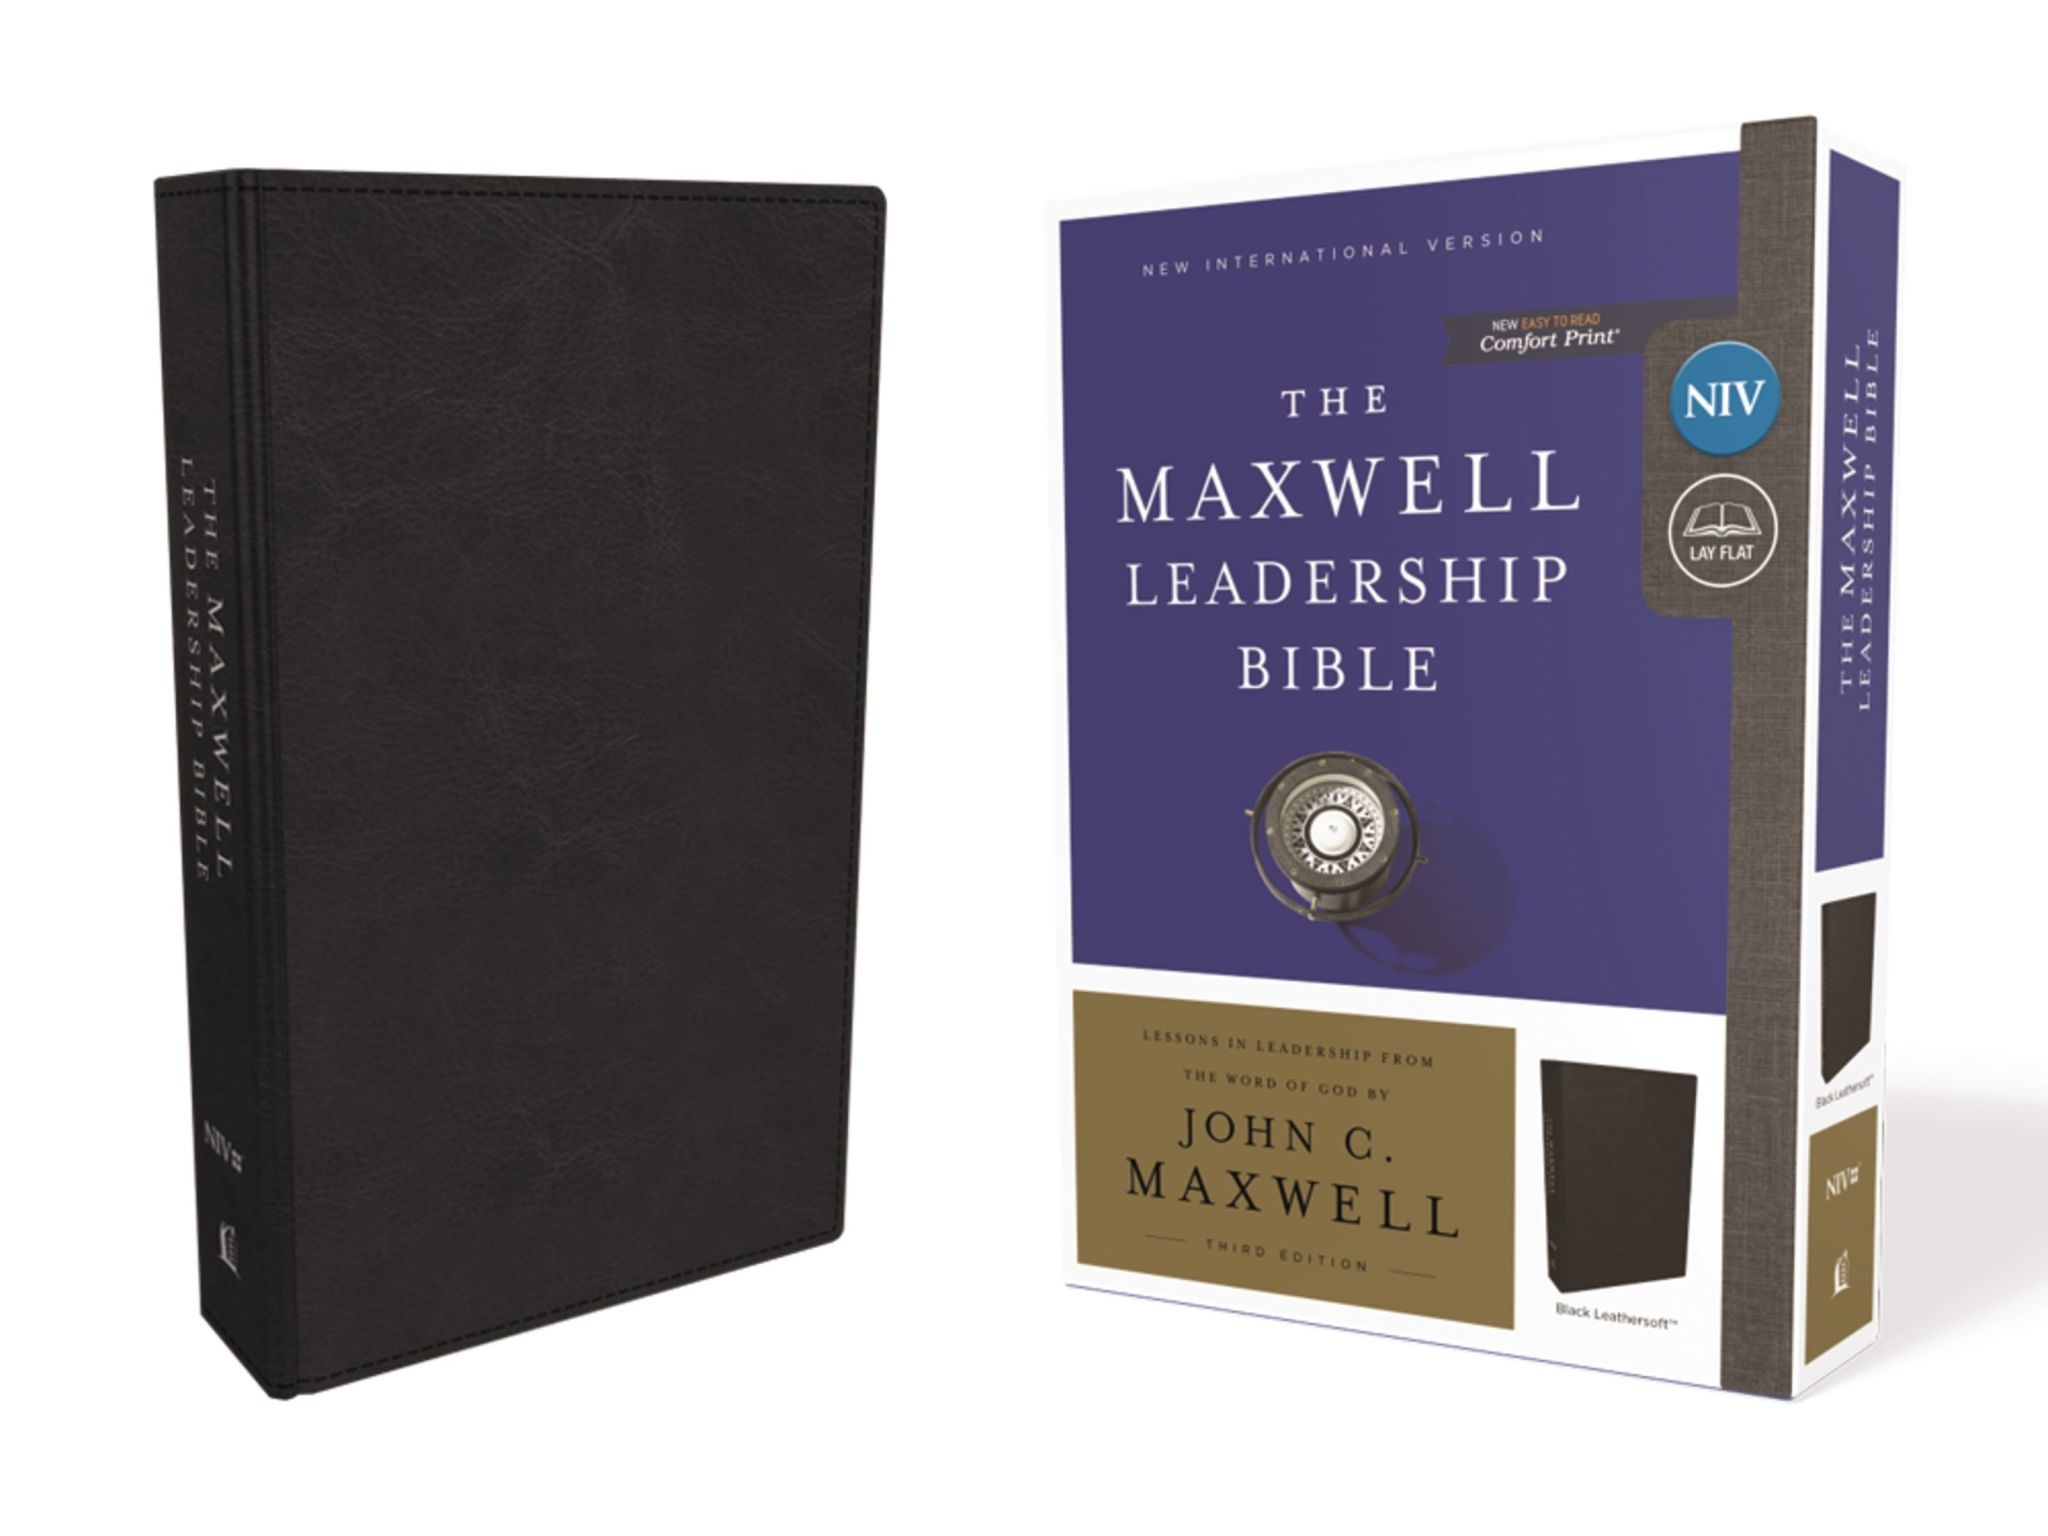 The Maxwell Leadership Bible NIV - Black Leathersoft